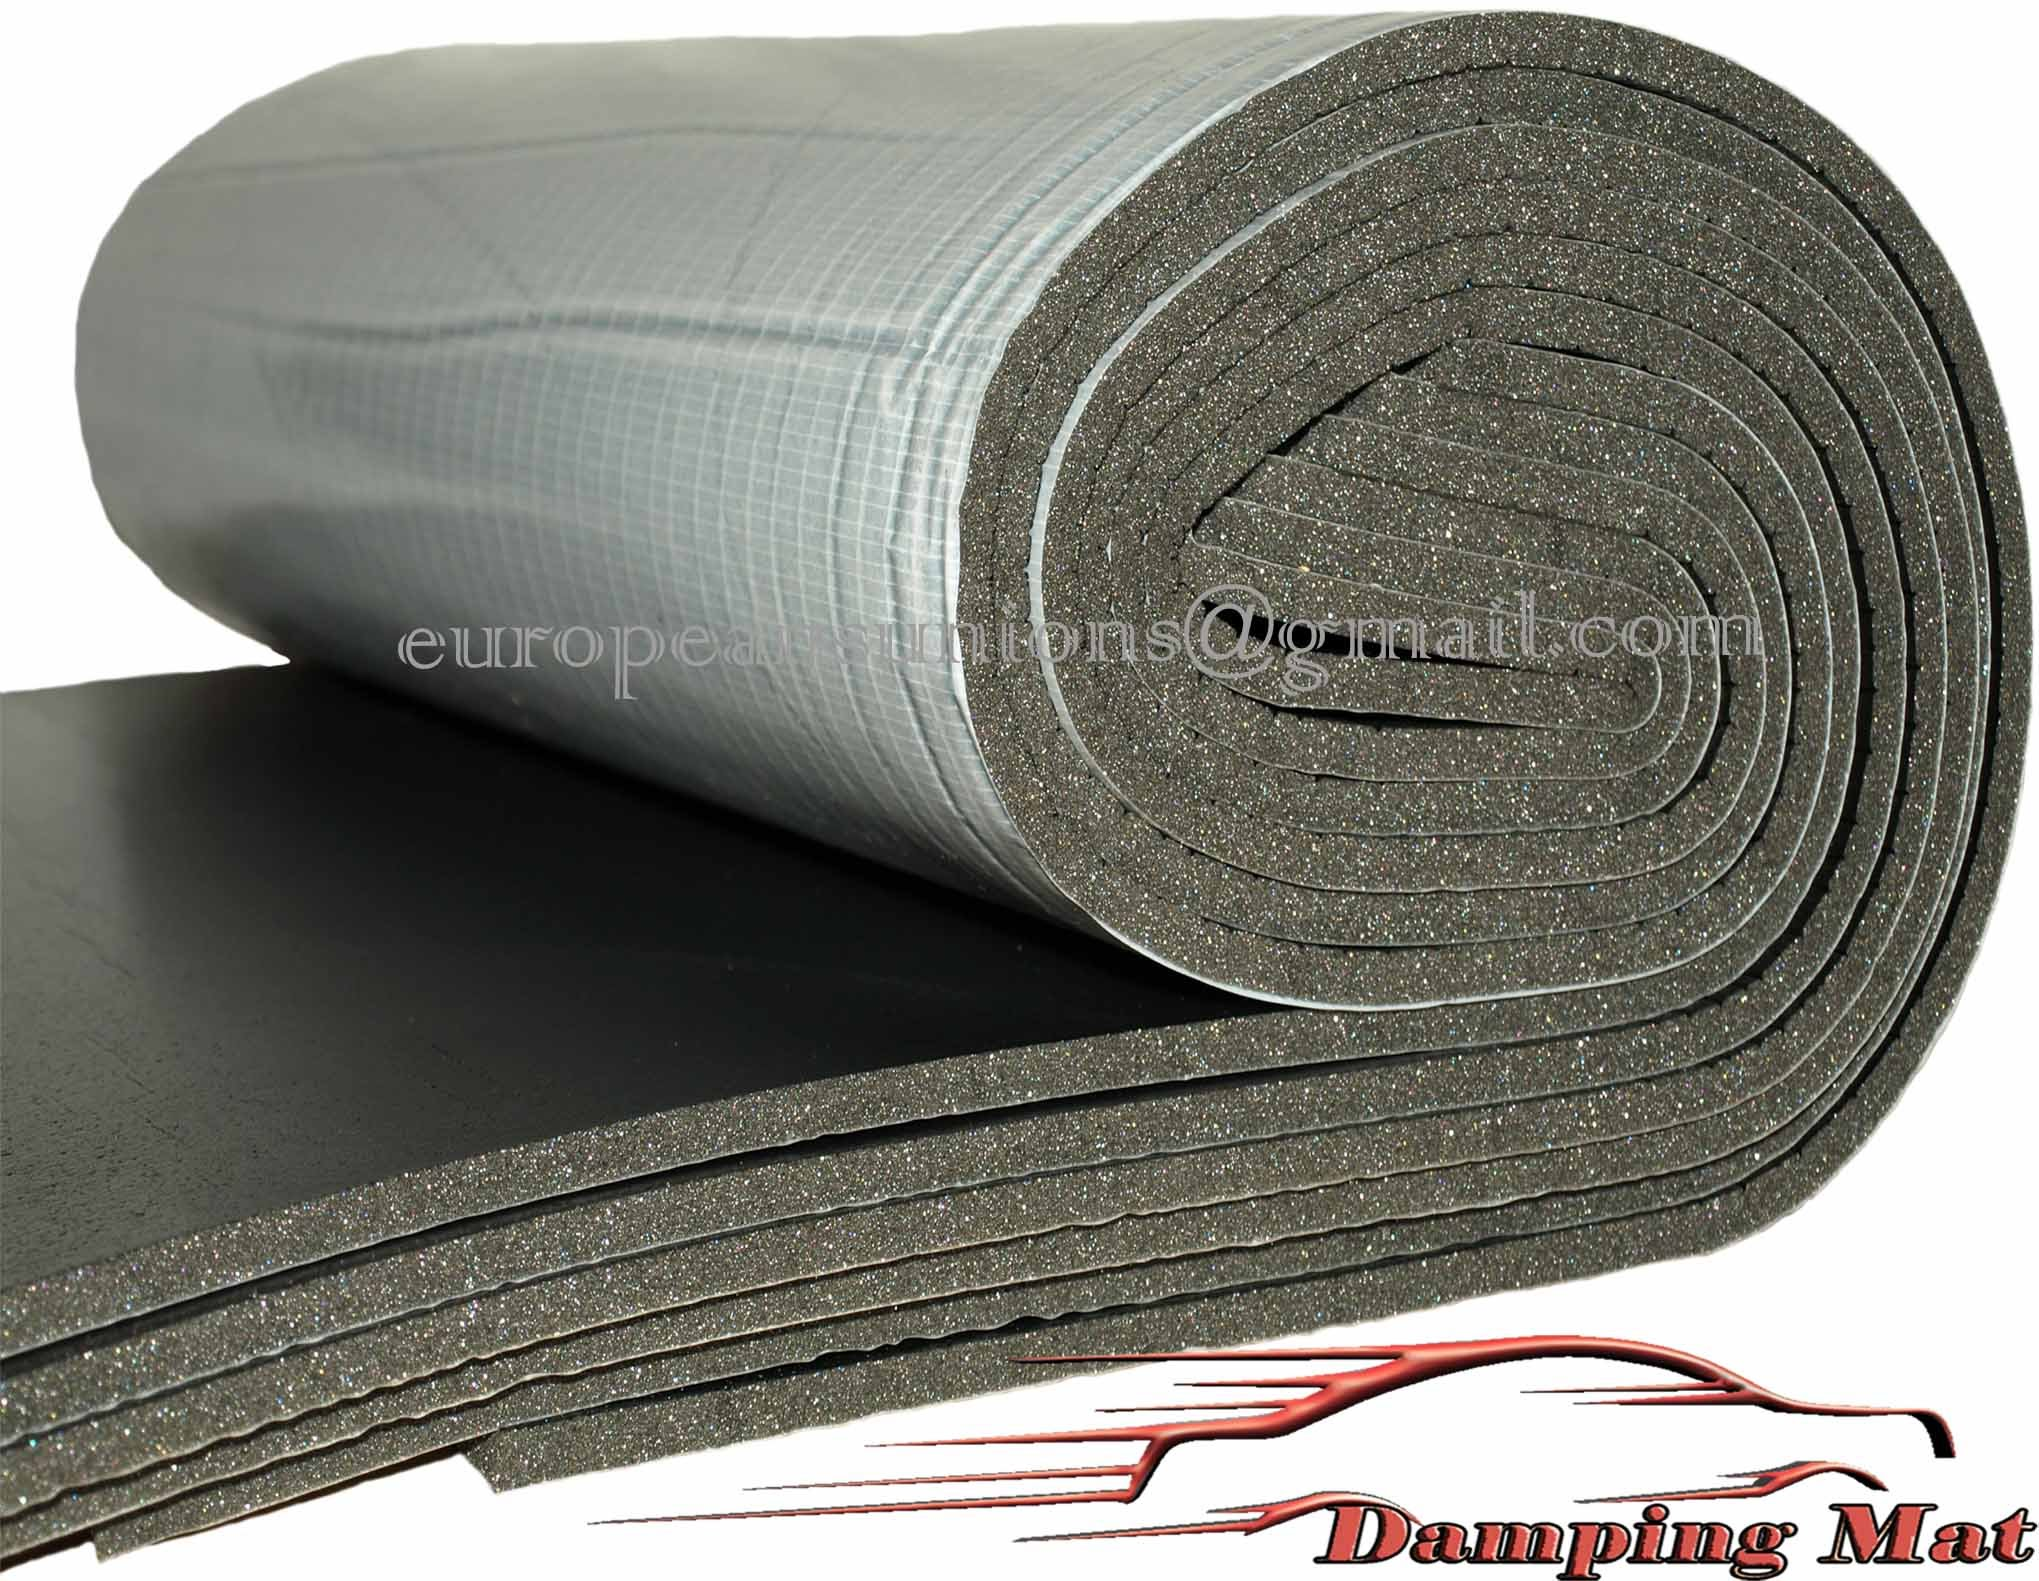 Acoustic Foam Boat : Damping mat isolator large sheets sq ft insulation